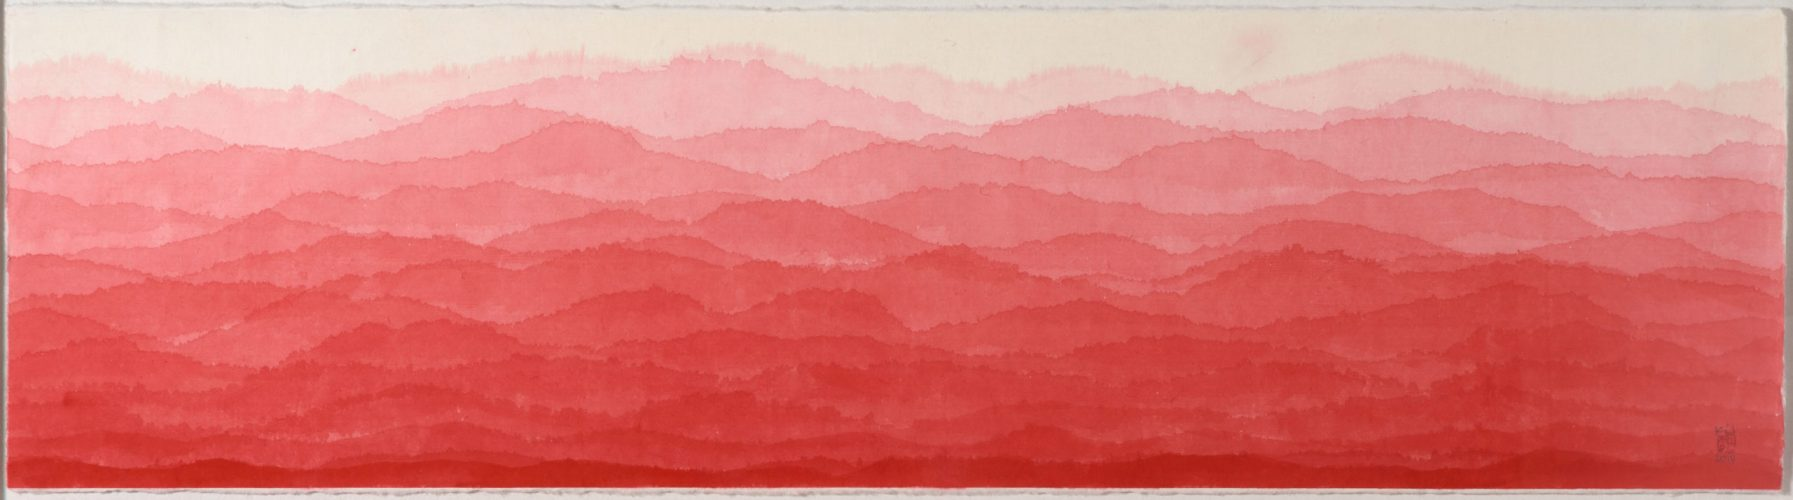 Red Mountain by Minjung Kim